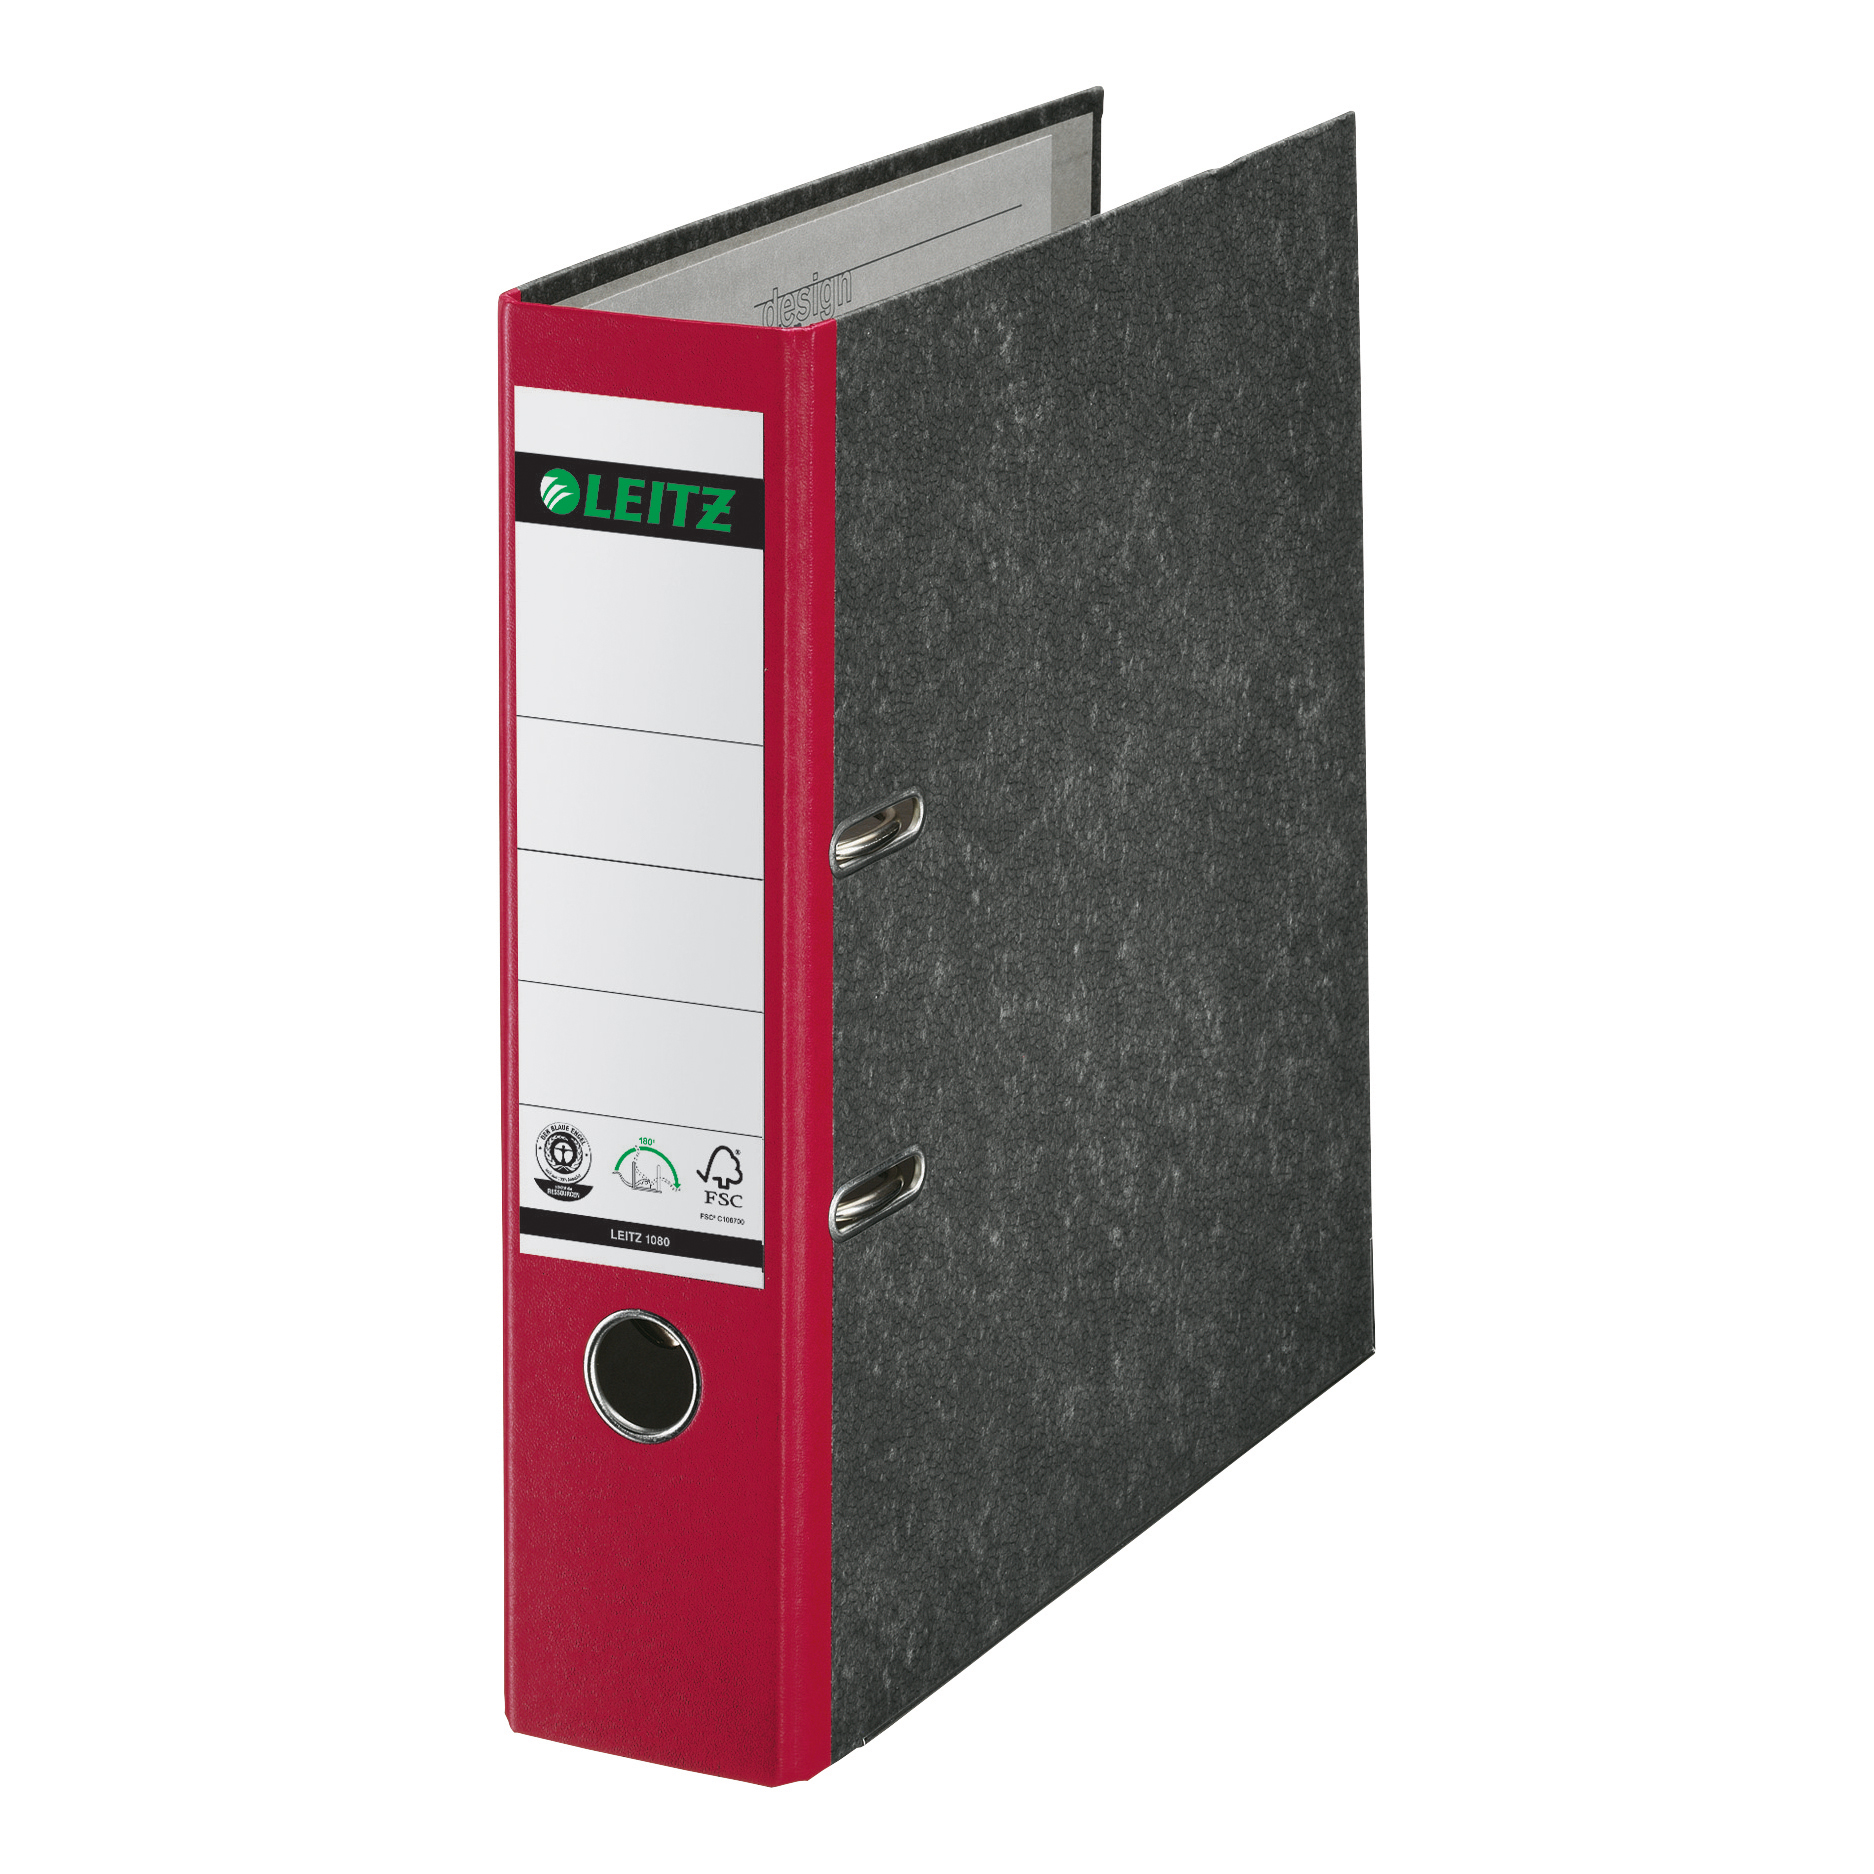 Leitz FSC Standard Lever Arch File 80mm Capacity A4 Red Ref 10801025 [Pack 10]